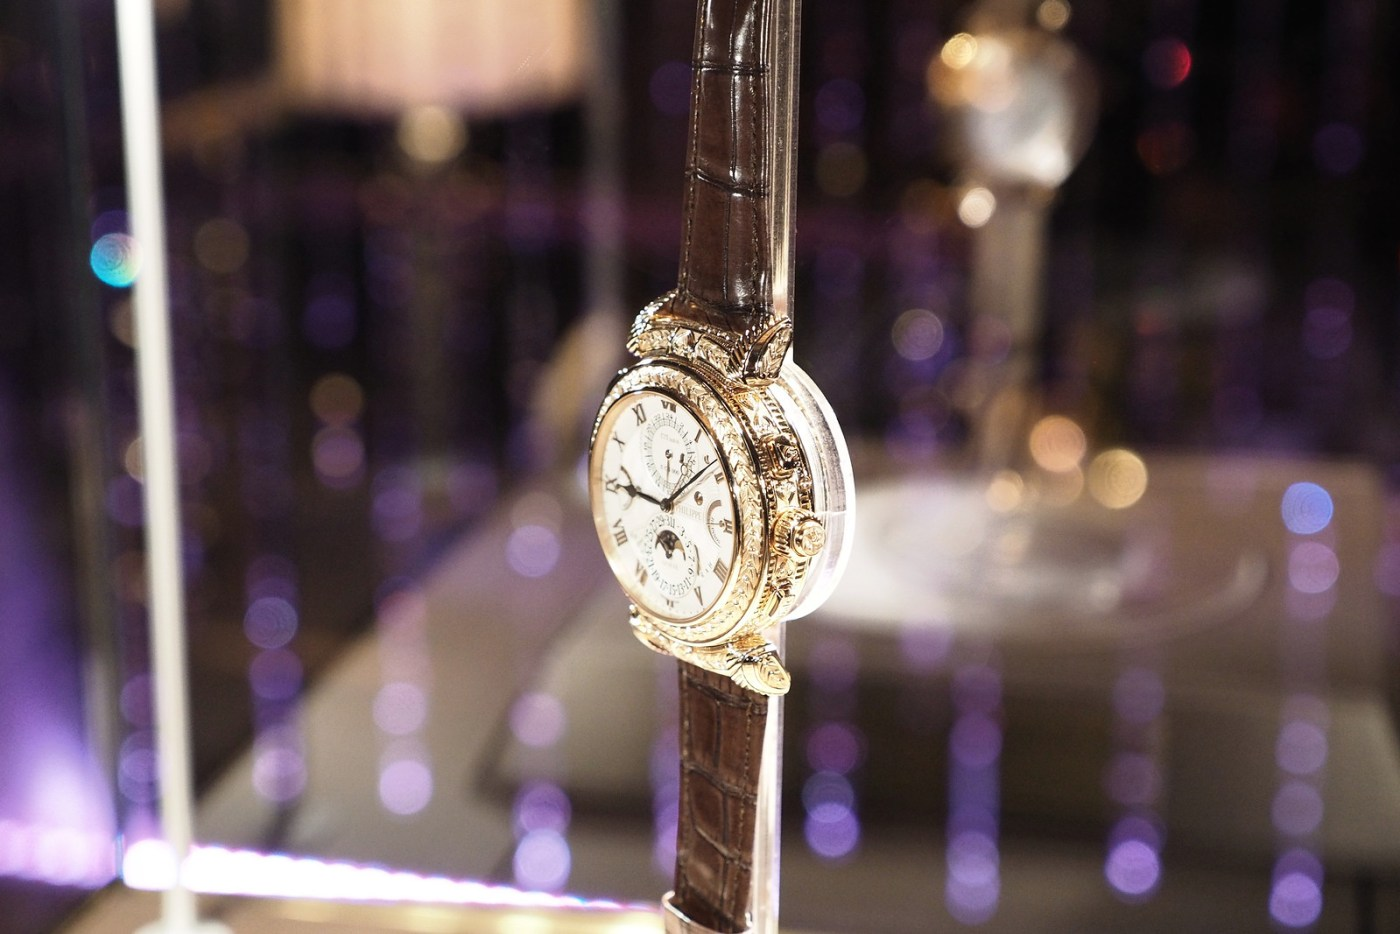 Grand Master Chime on display at Patek Philippe 175th NYC